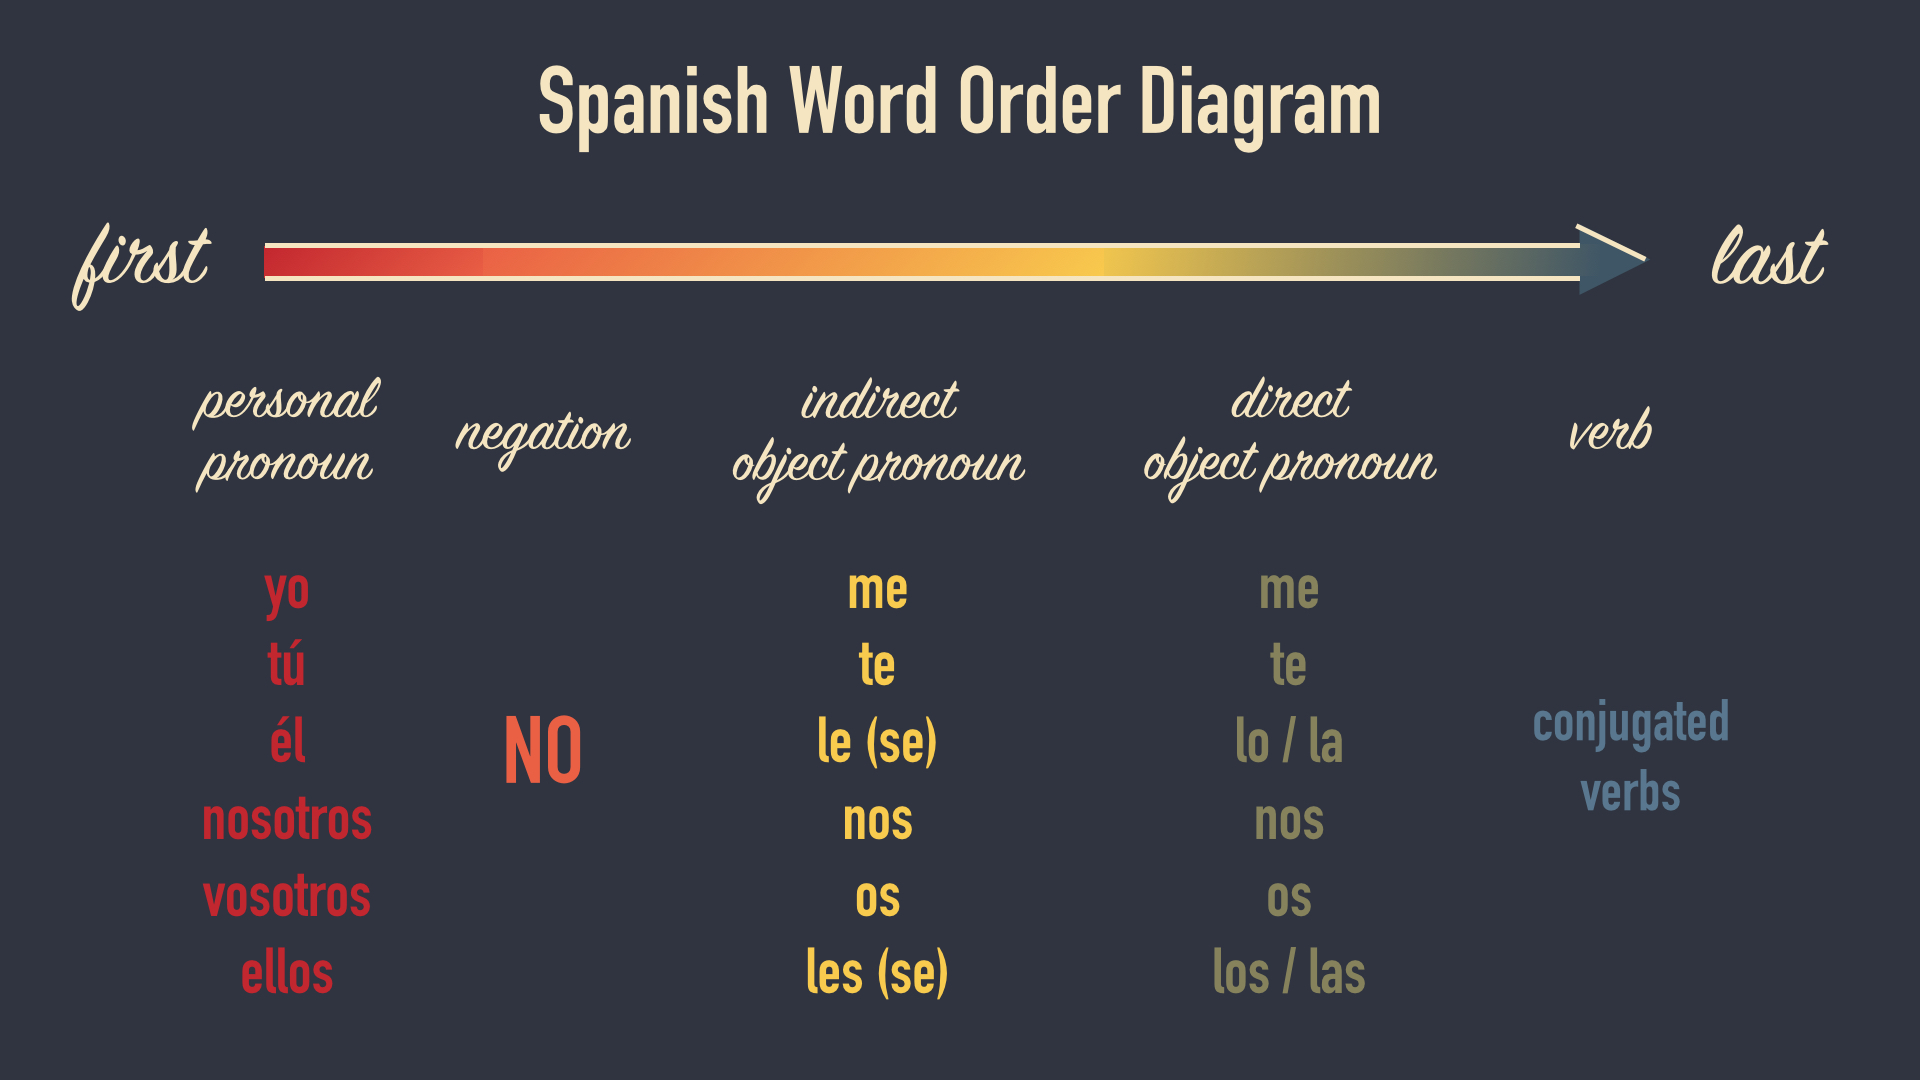 Spanish Word Order Diagram Pronouns Negation Direct